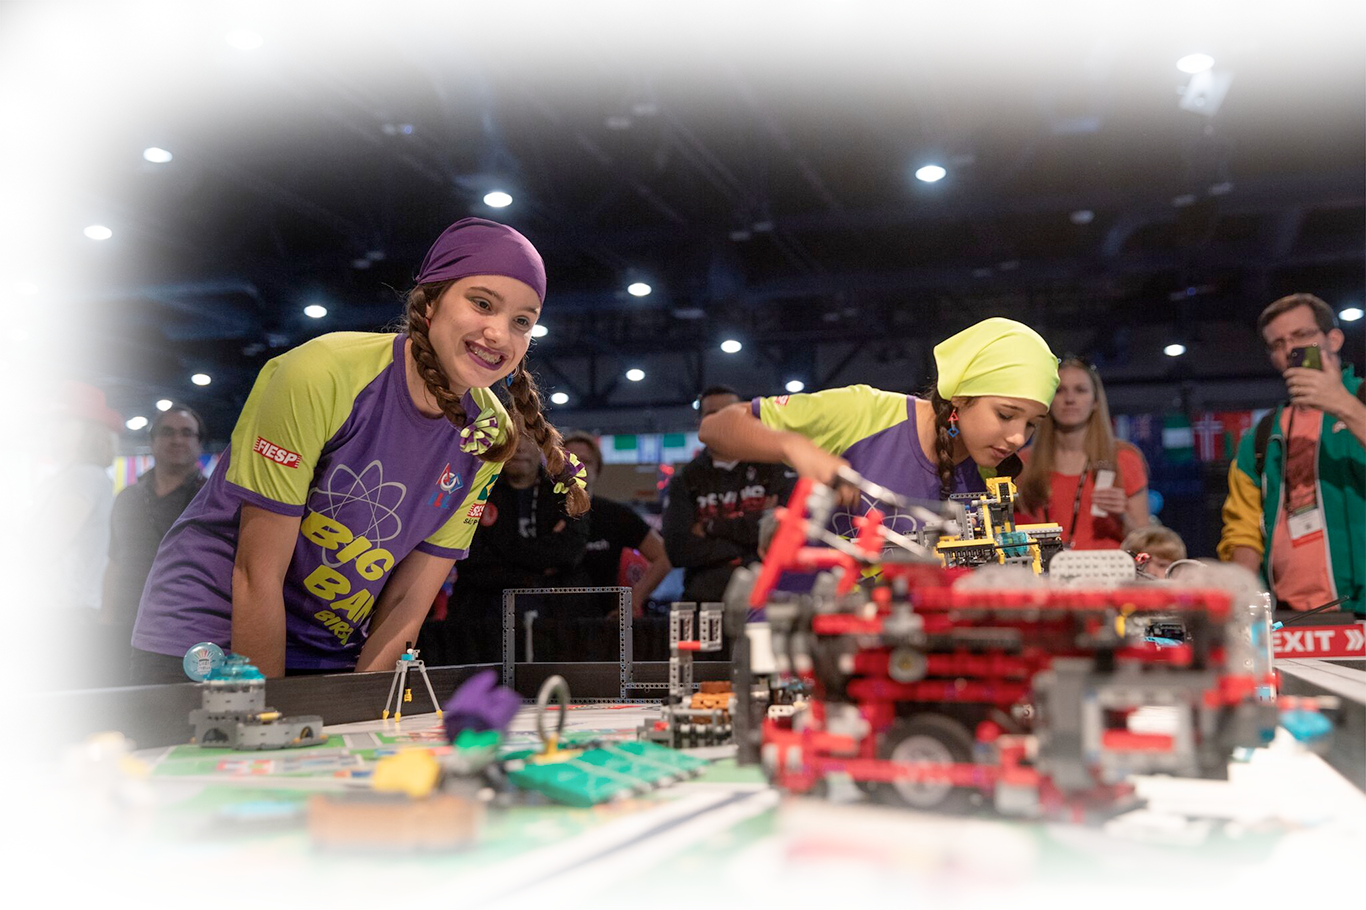 Students competing with LEGO robots at an event.